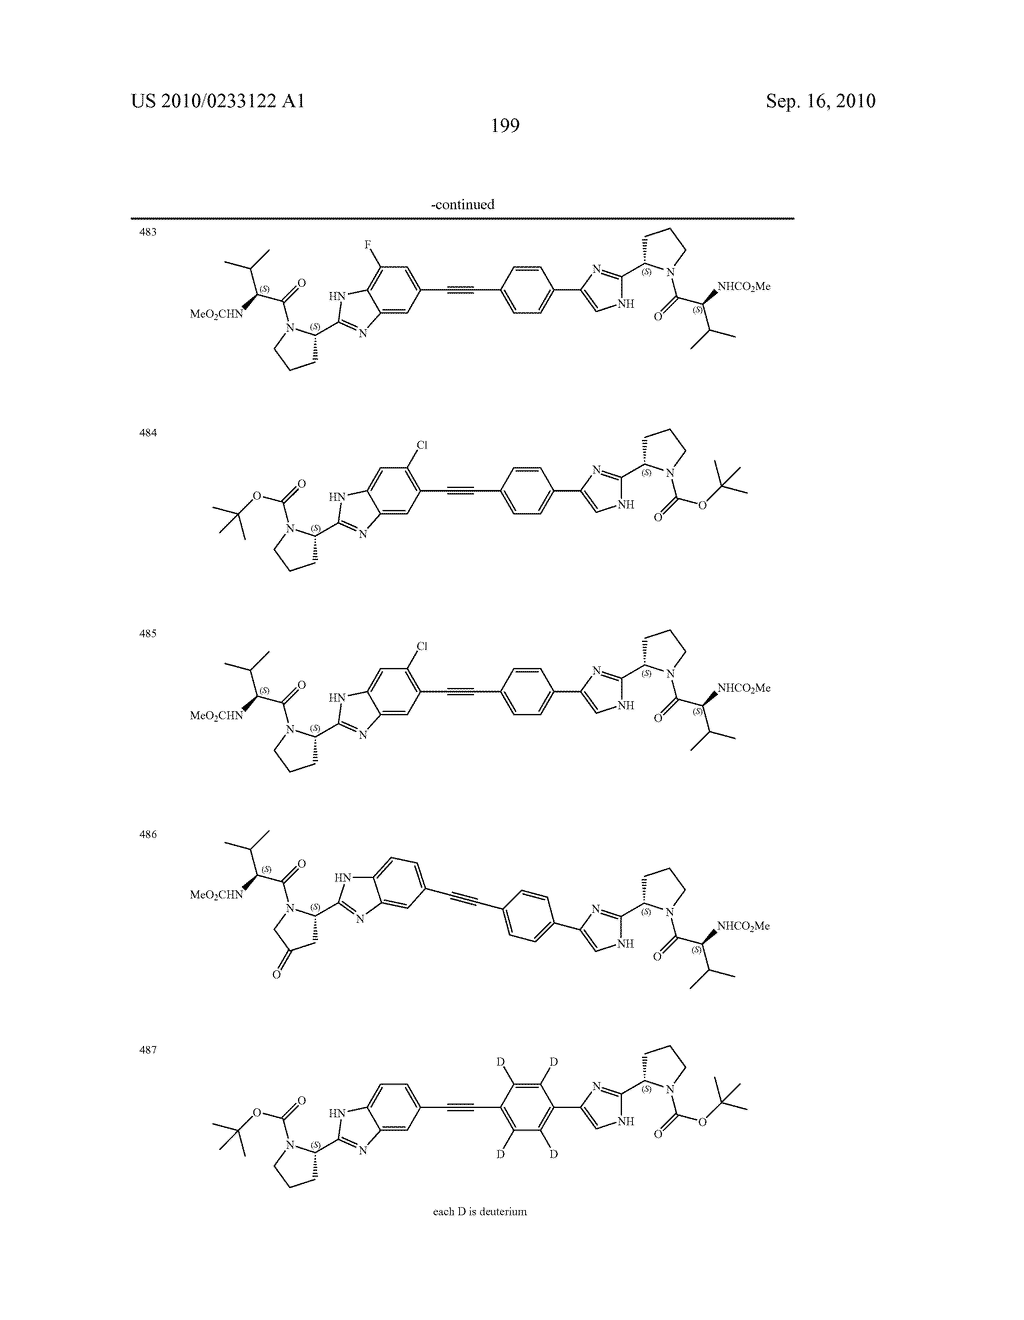 NOVEL BENZIMIDAZOLE DERIVATIVES - diagram, schematic, and image 200